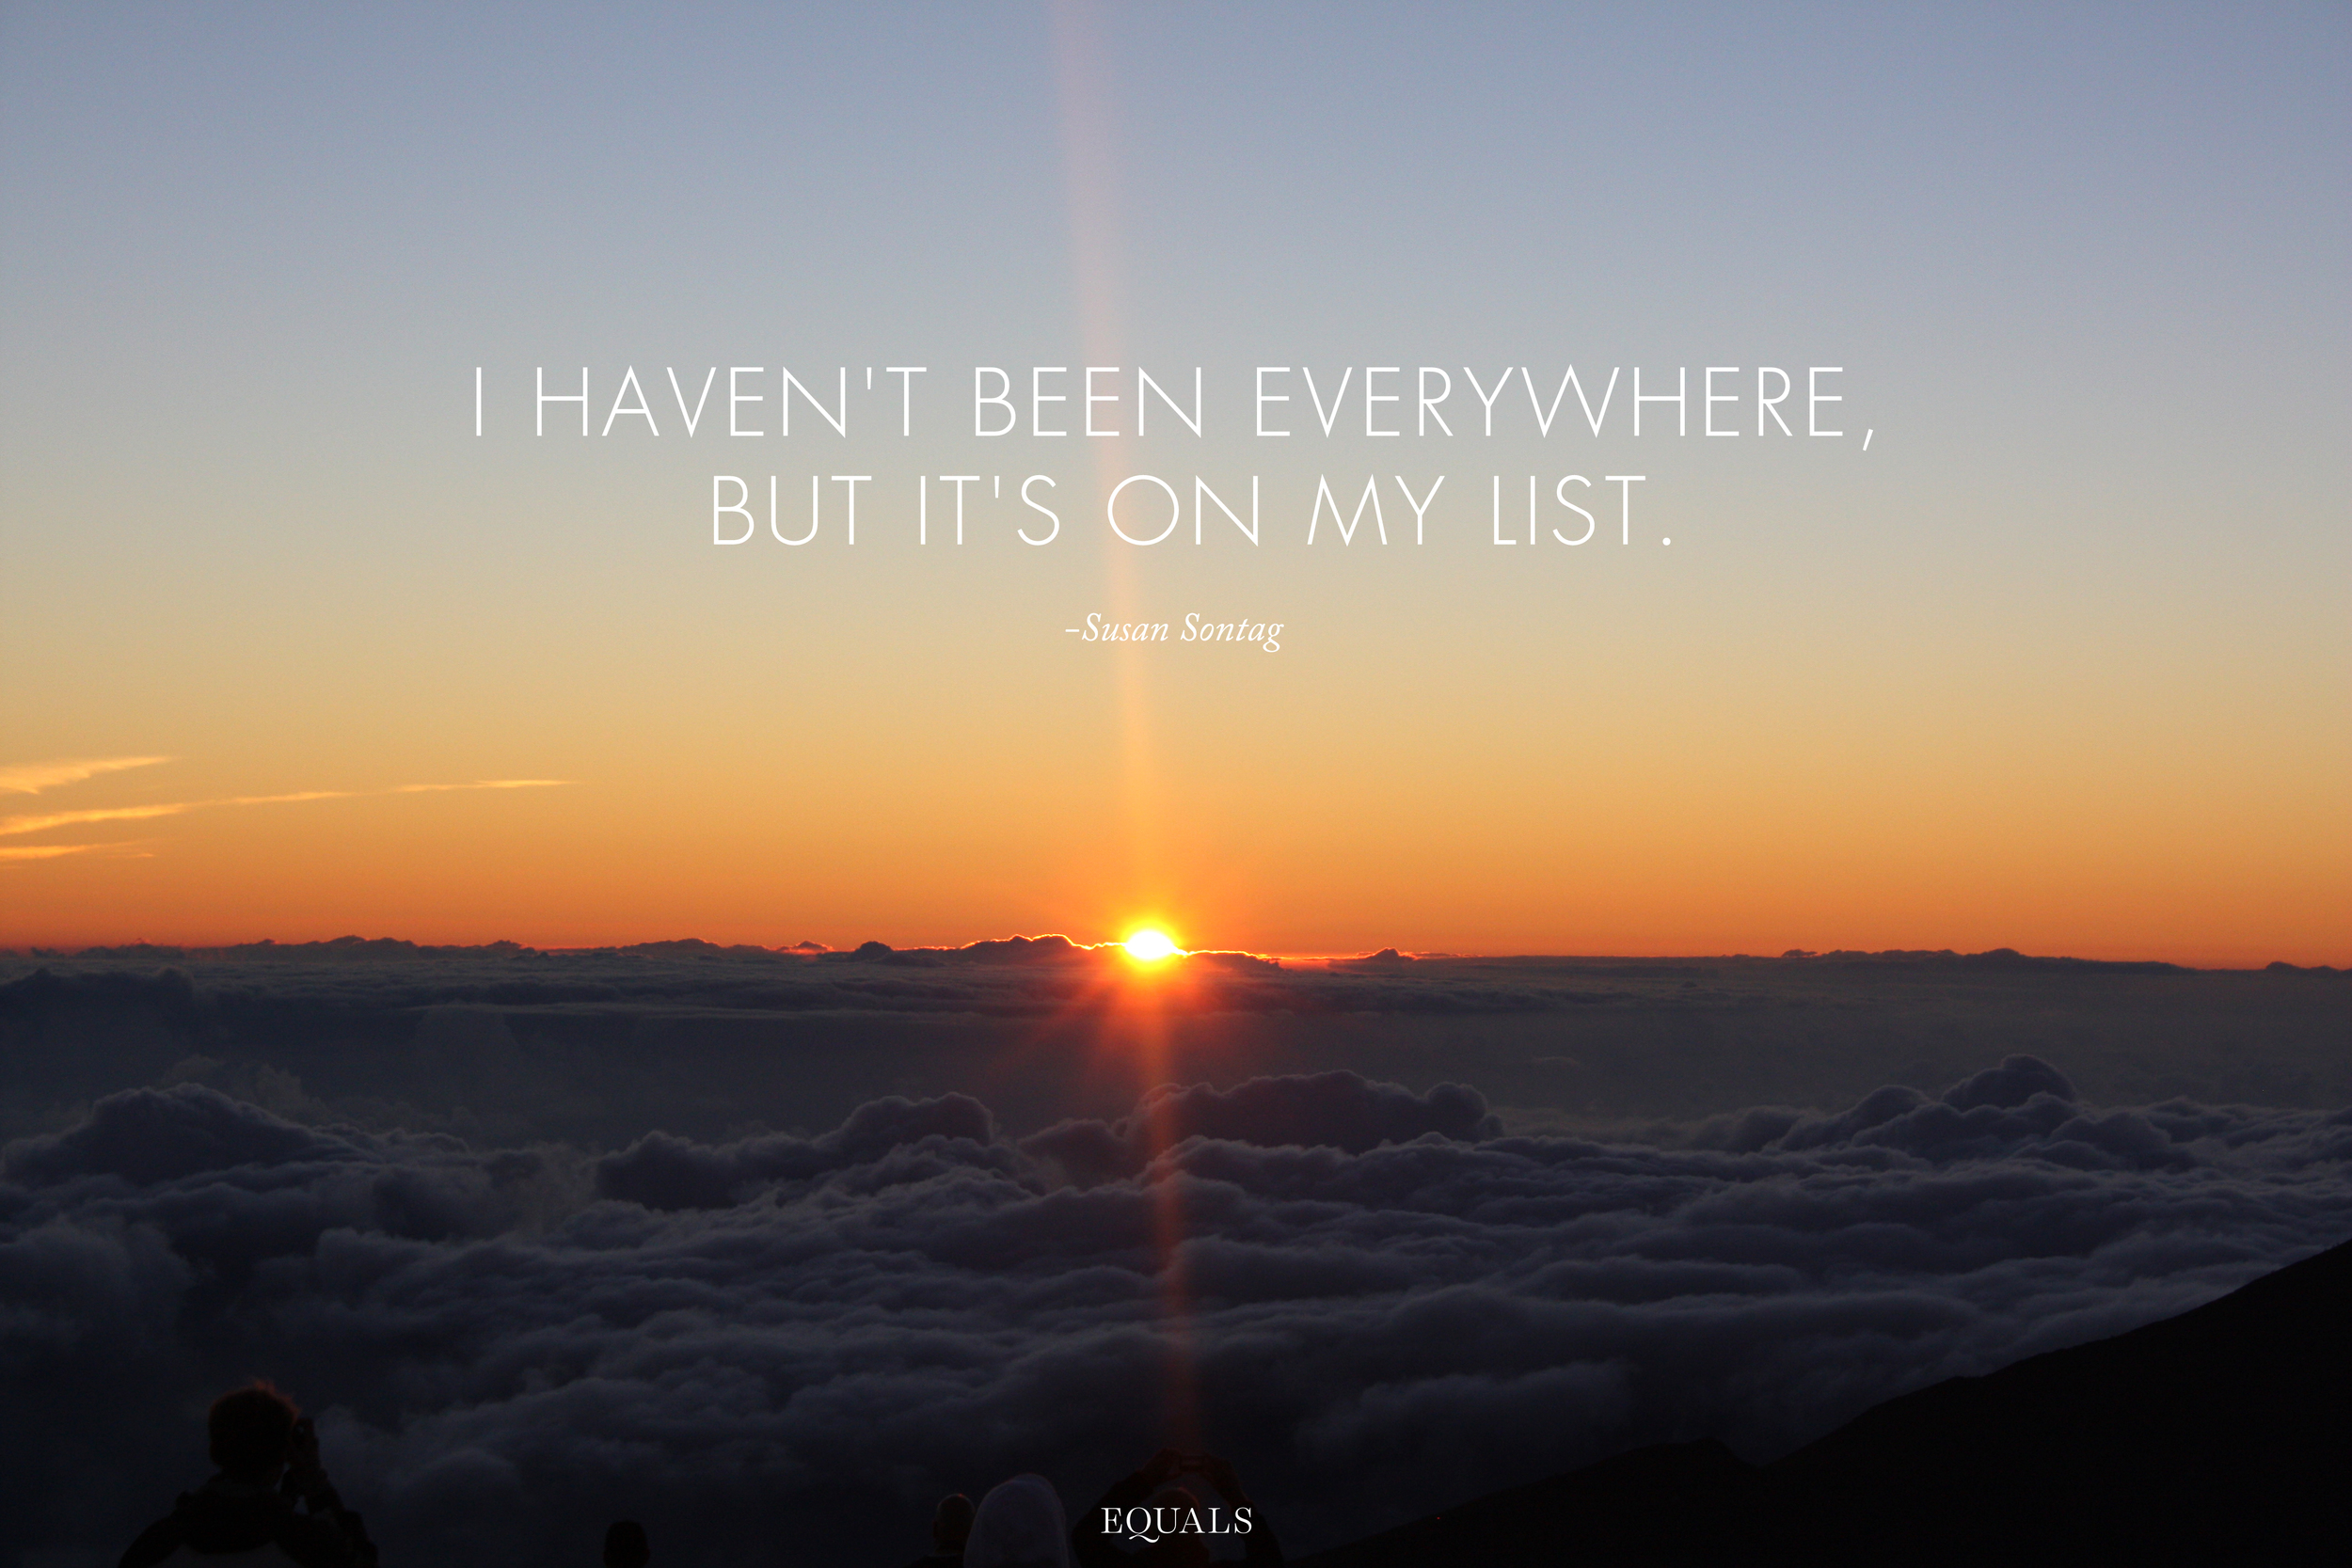 I haven't been everywhere, but it's on my list. -Susan Sontag